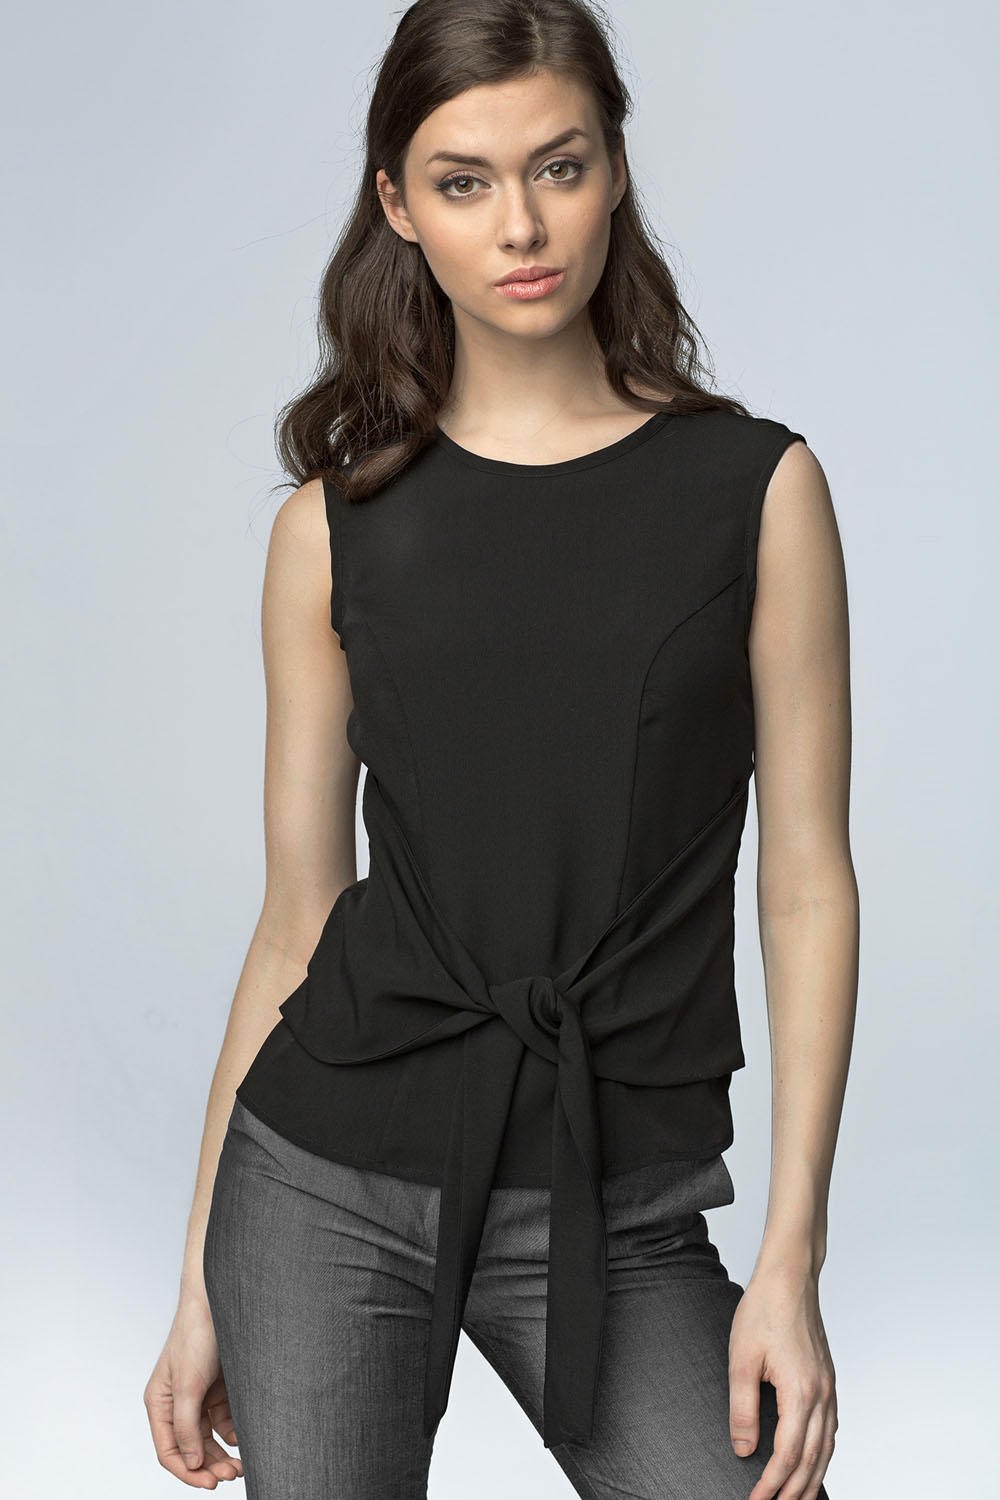 a64fbd9be08 Black Elegant Blouse with Bow Tie Waist